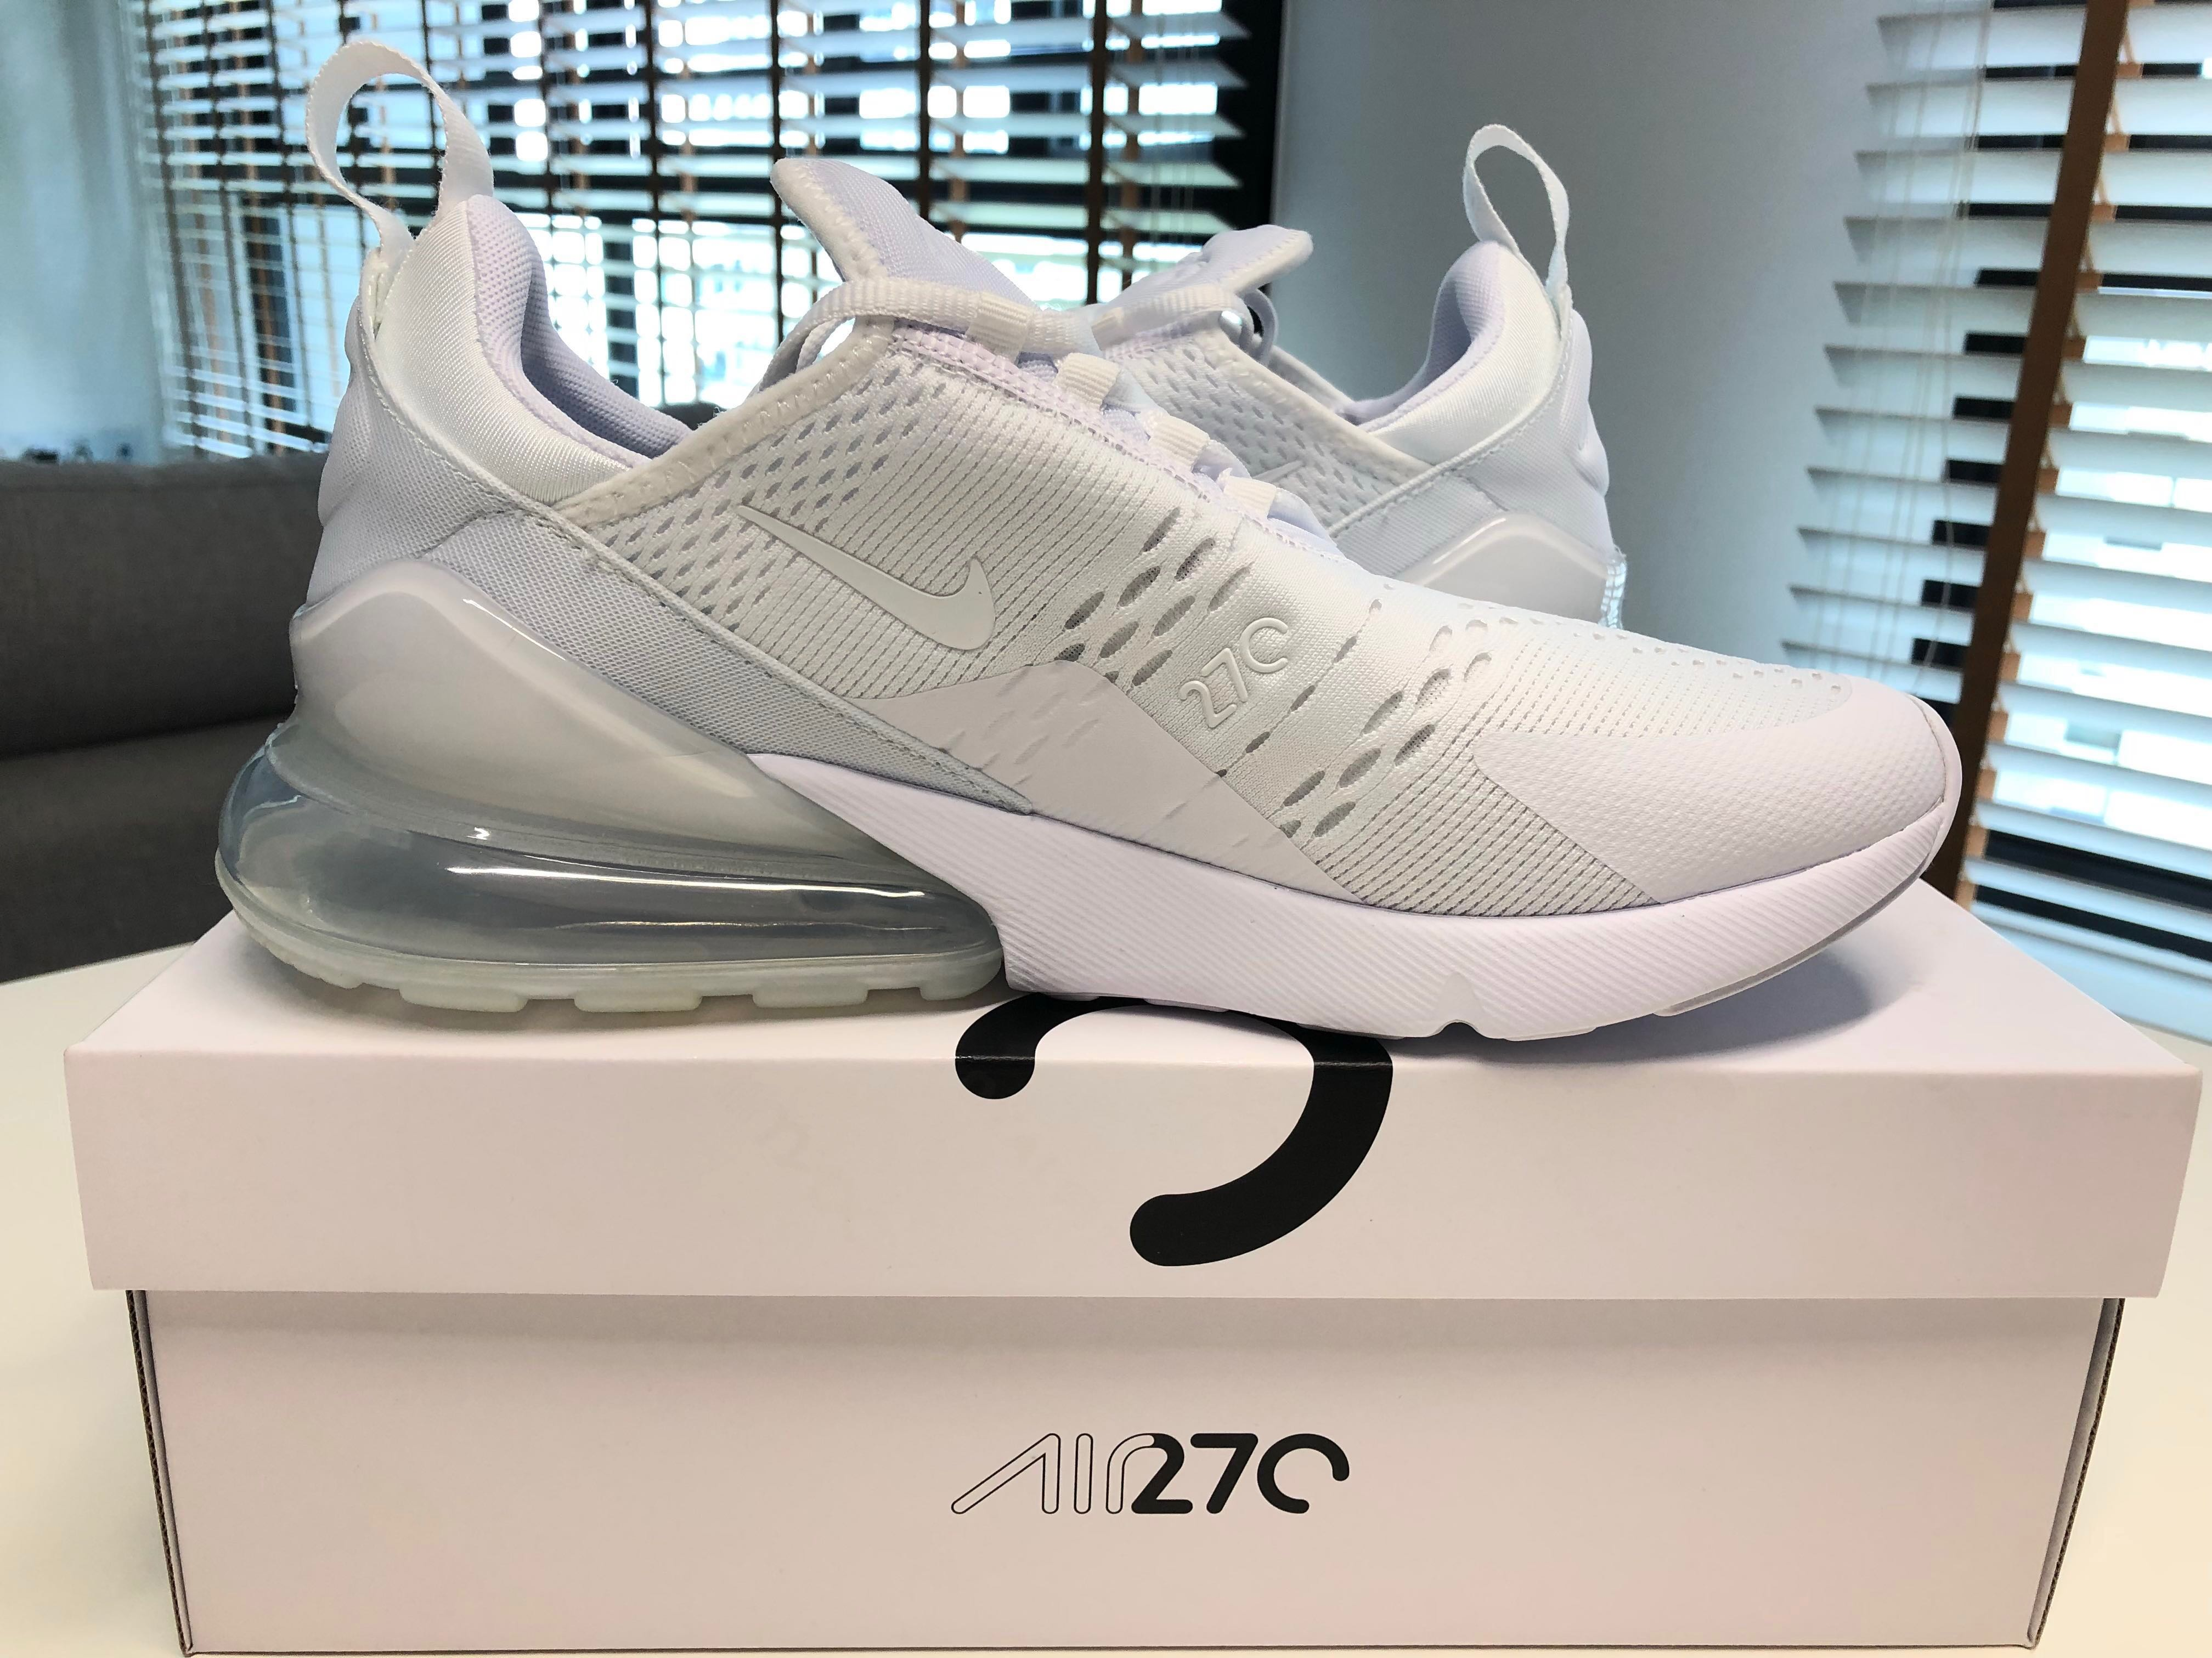 51b45102 Nike Air Max 270 (CLEARANCE), Men's Fashion, Footwear, Sneakers on ...